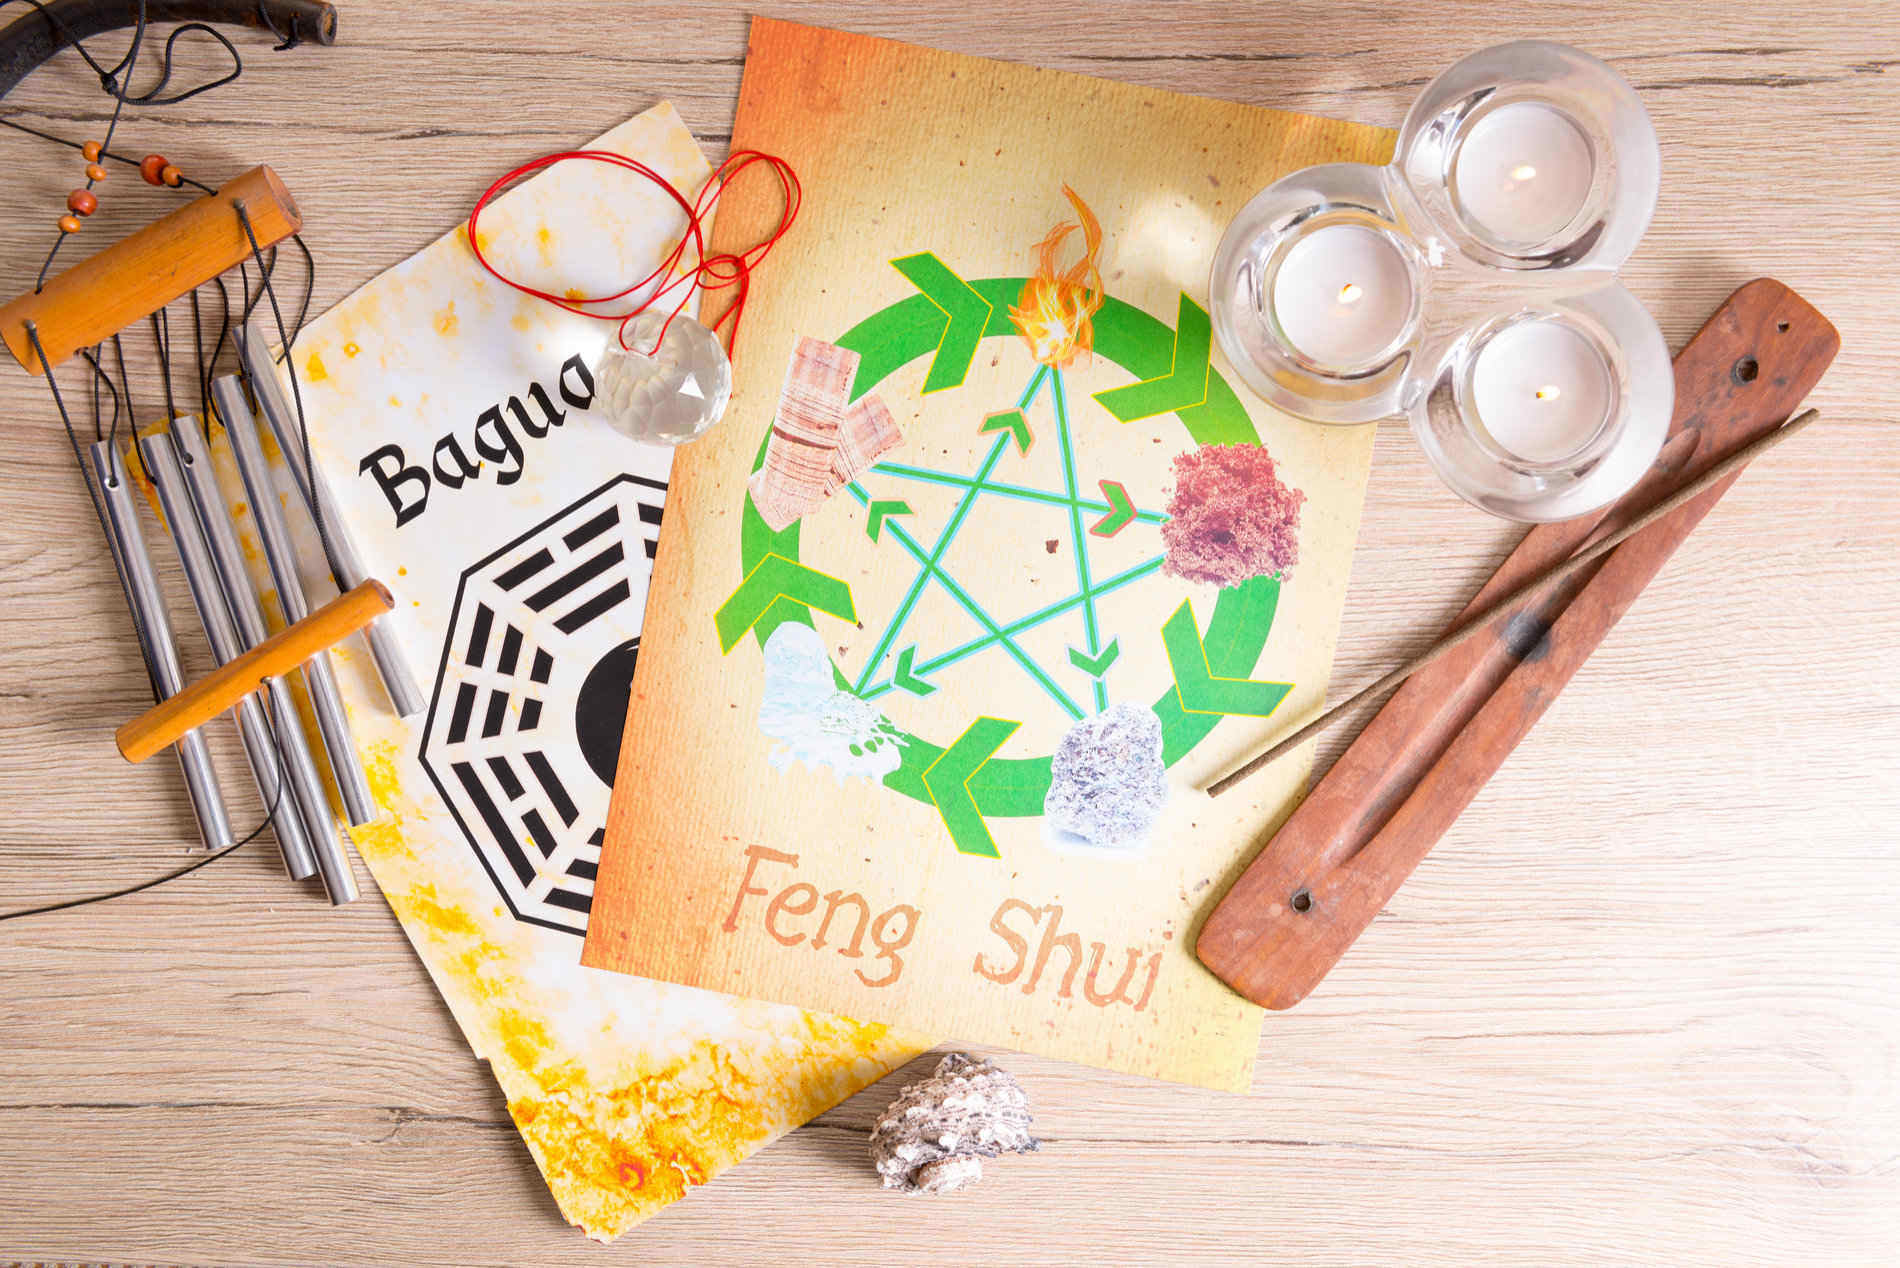 Fen Shui The Ultimate Guide For Feng Shui Basics To Bring Peace Harmony